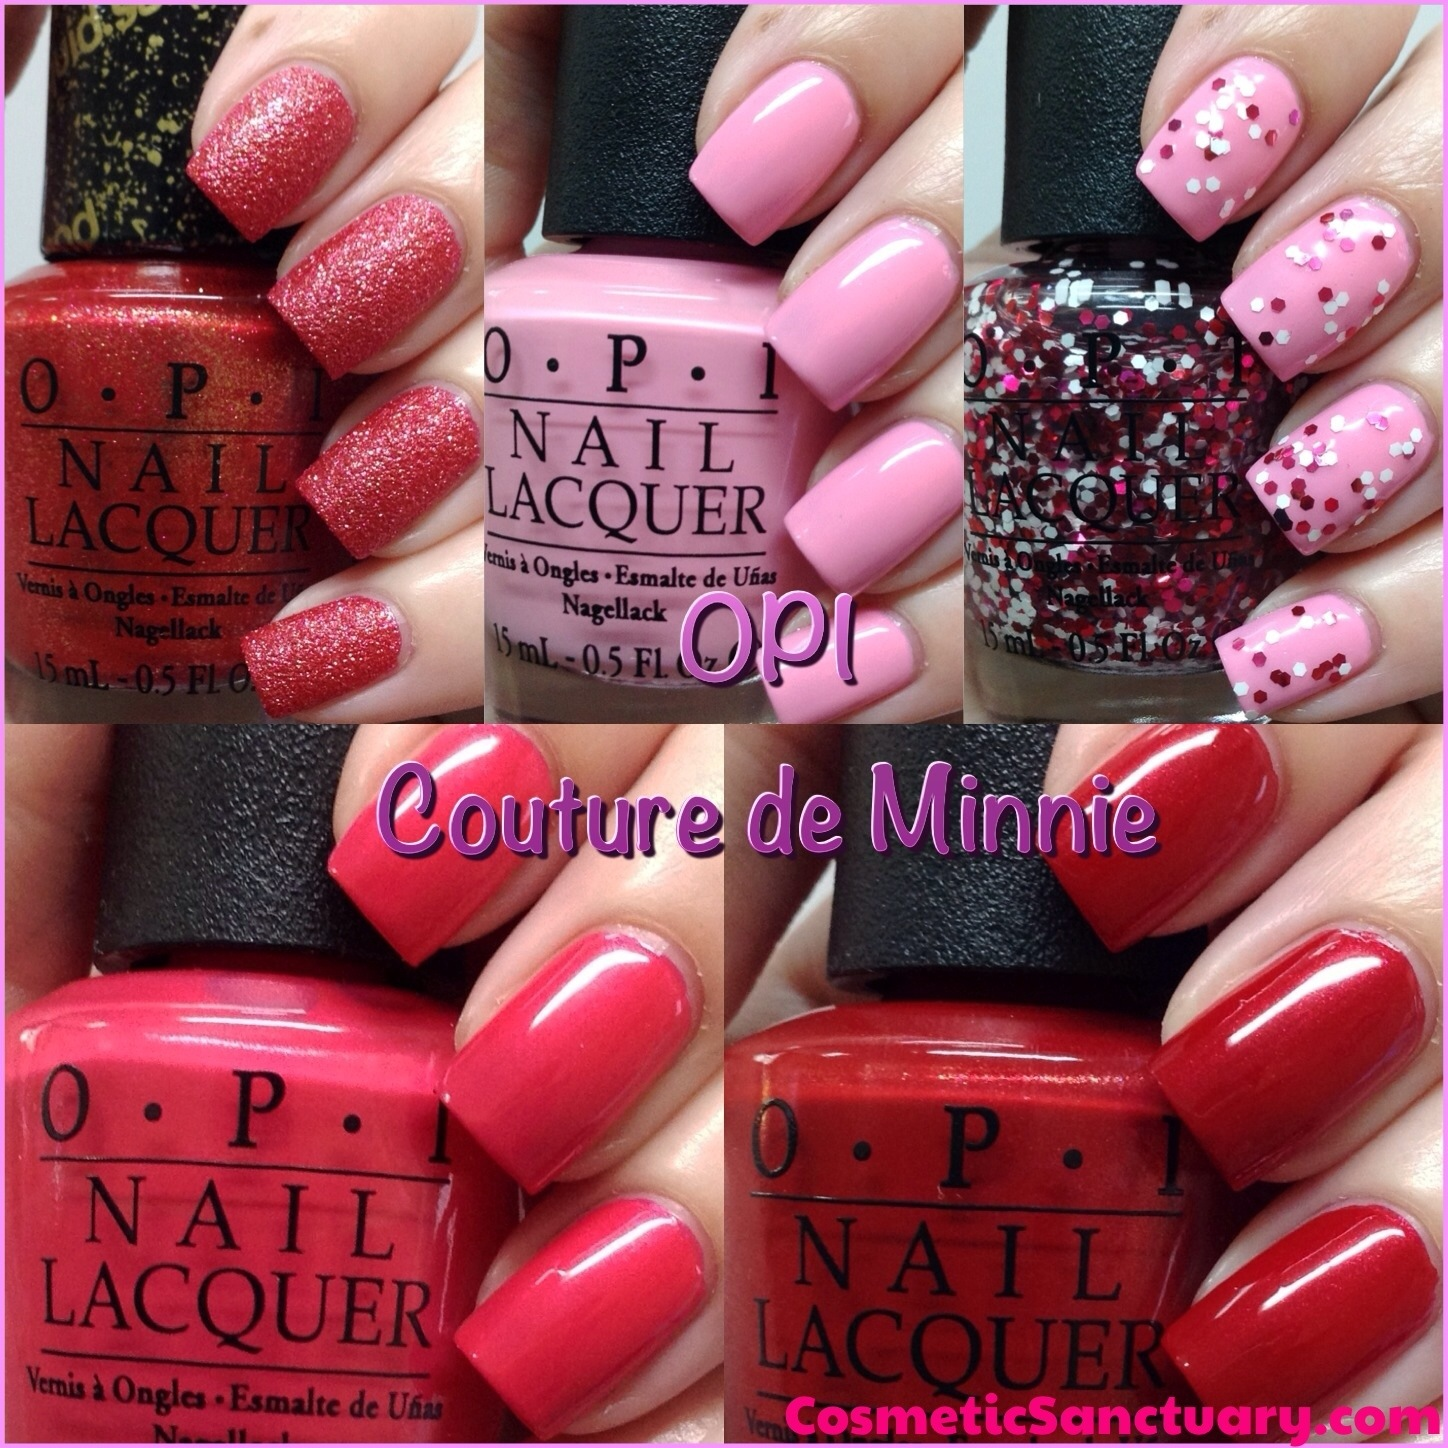 Opi Couture De Minnie Collection Swatches And Review Cosmetic Sanctuary